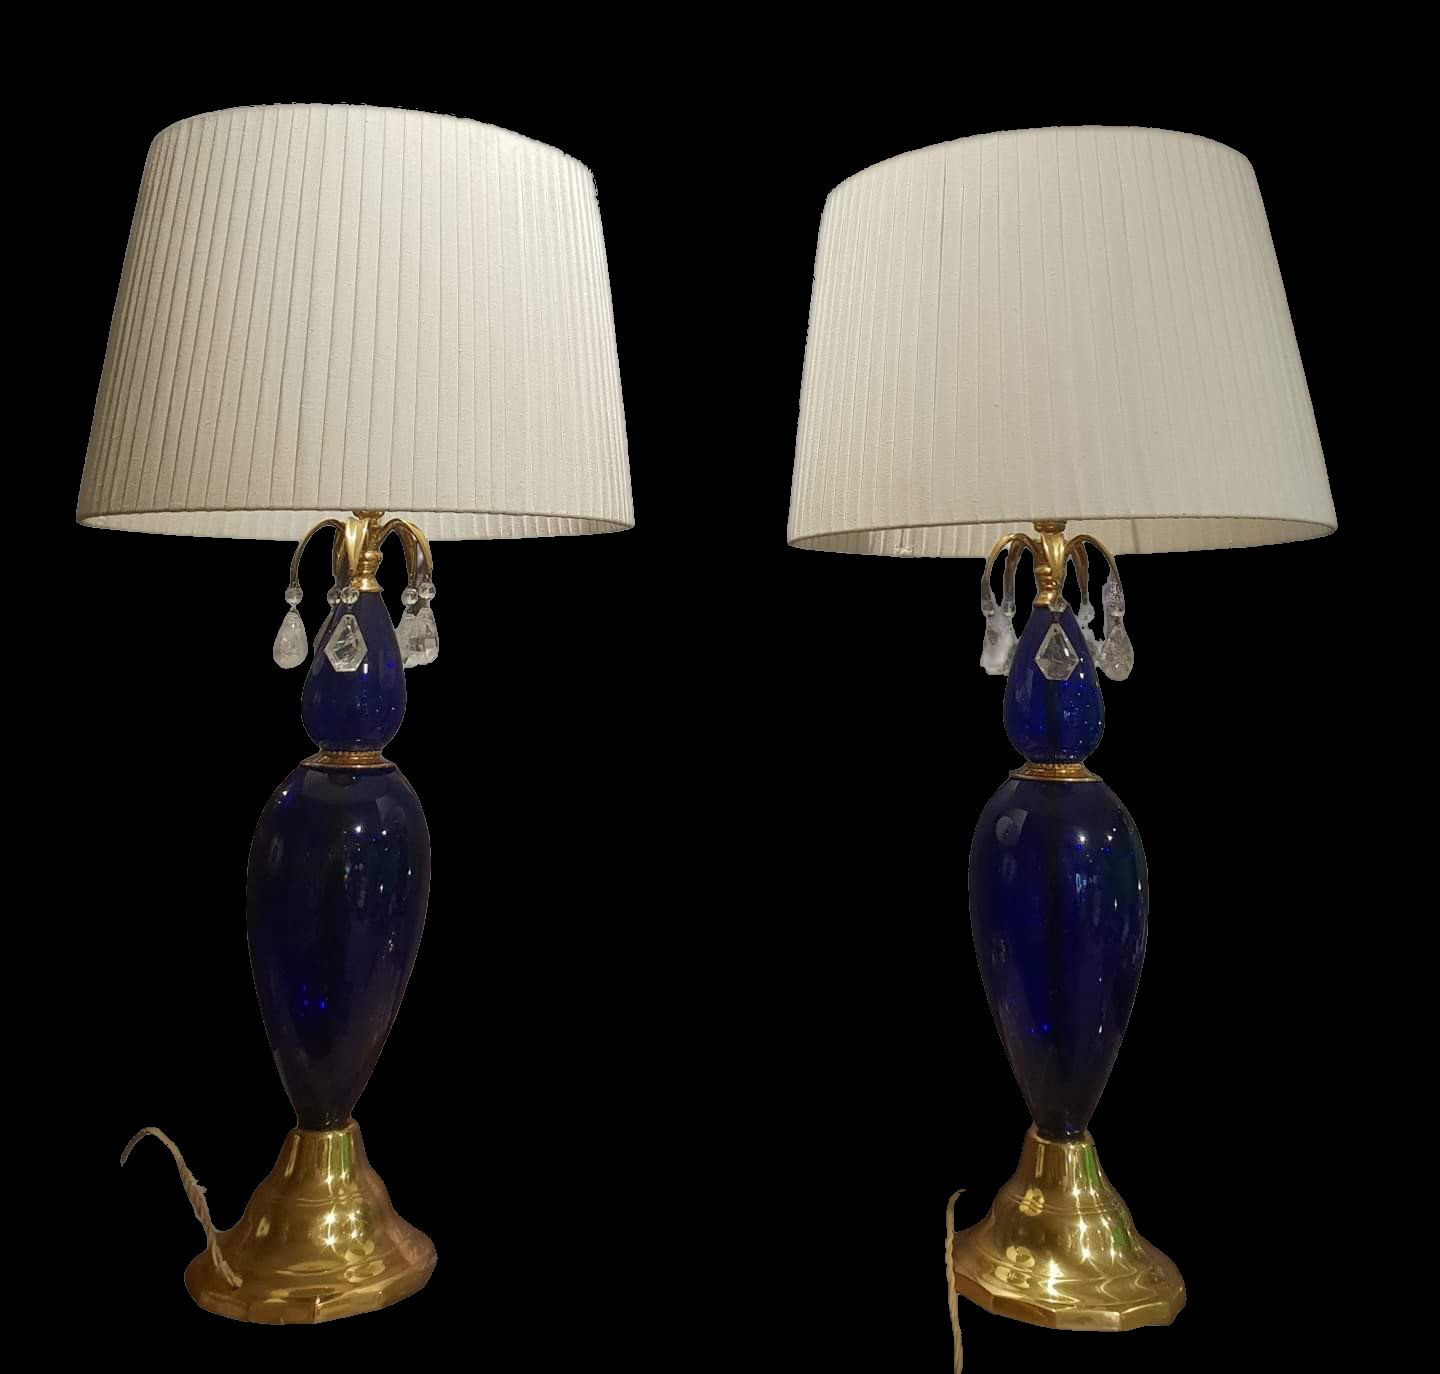 Pair of C1950s Russian Table Lamps